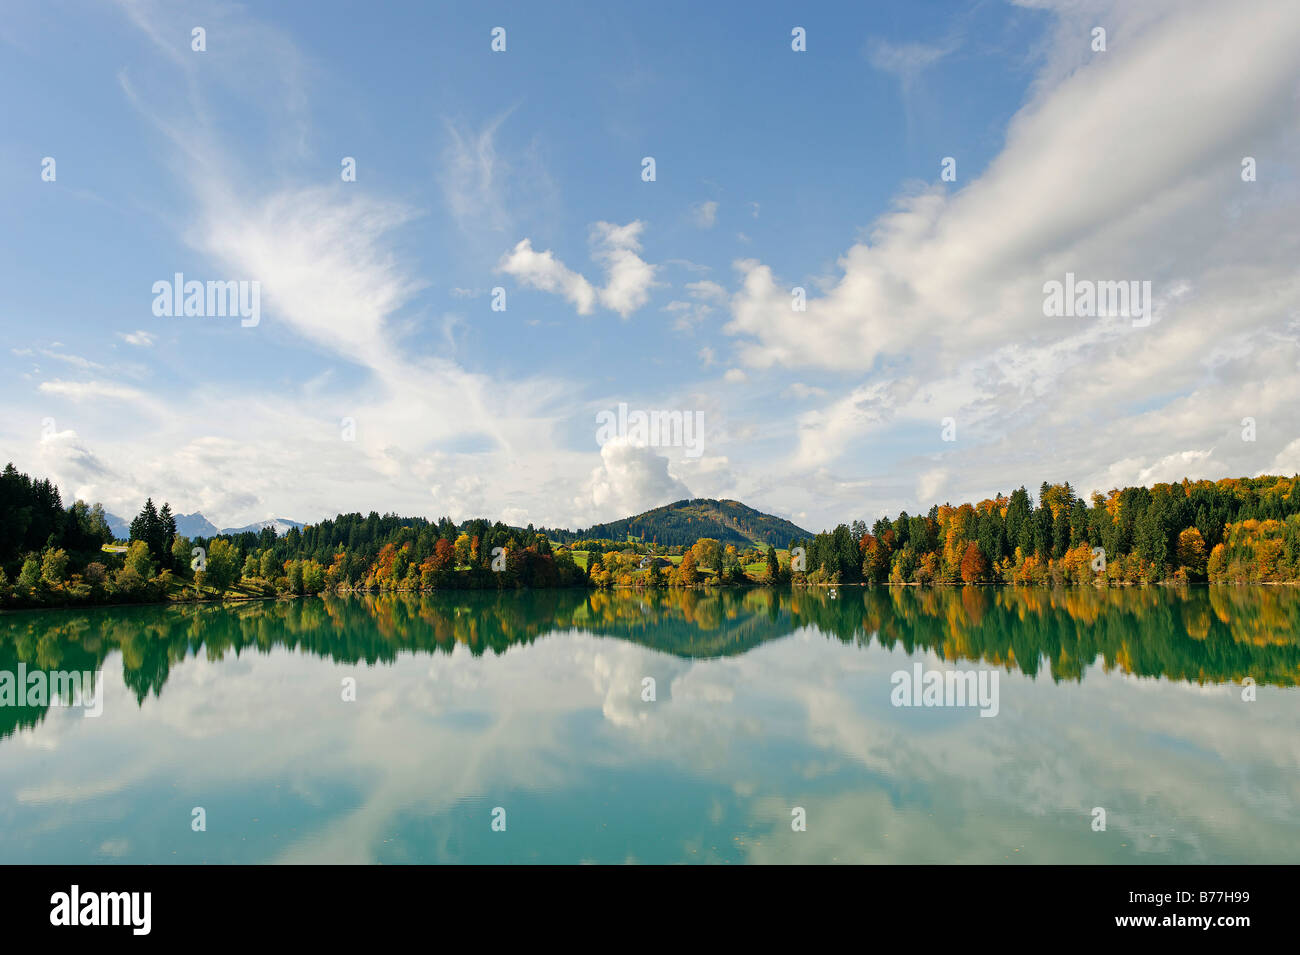 Forggensee lake in front of the Zwieselberg mountain, 1055 m, near Rosshaupten, Bavarian Swabia, Bavaria, Germany Stock Photo